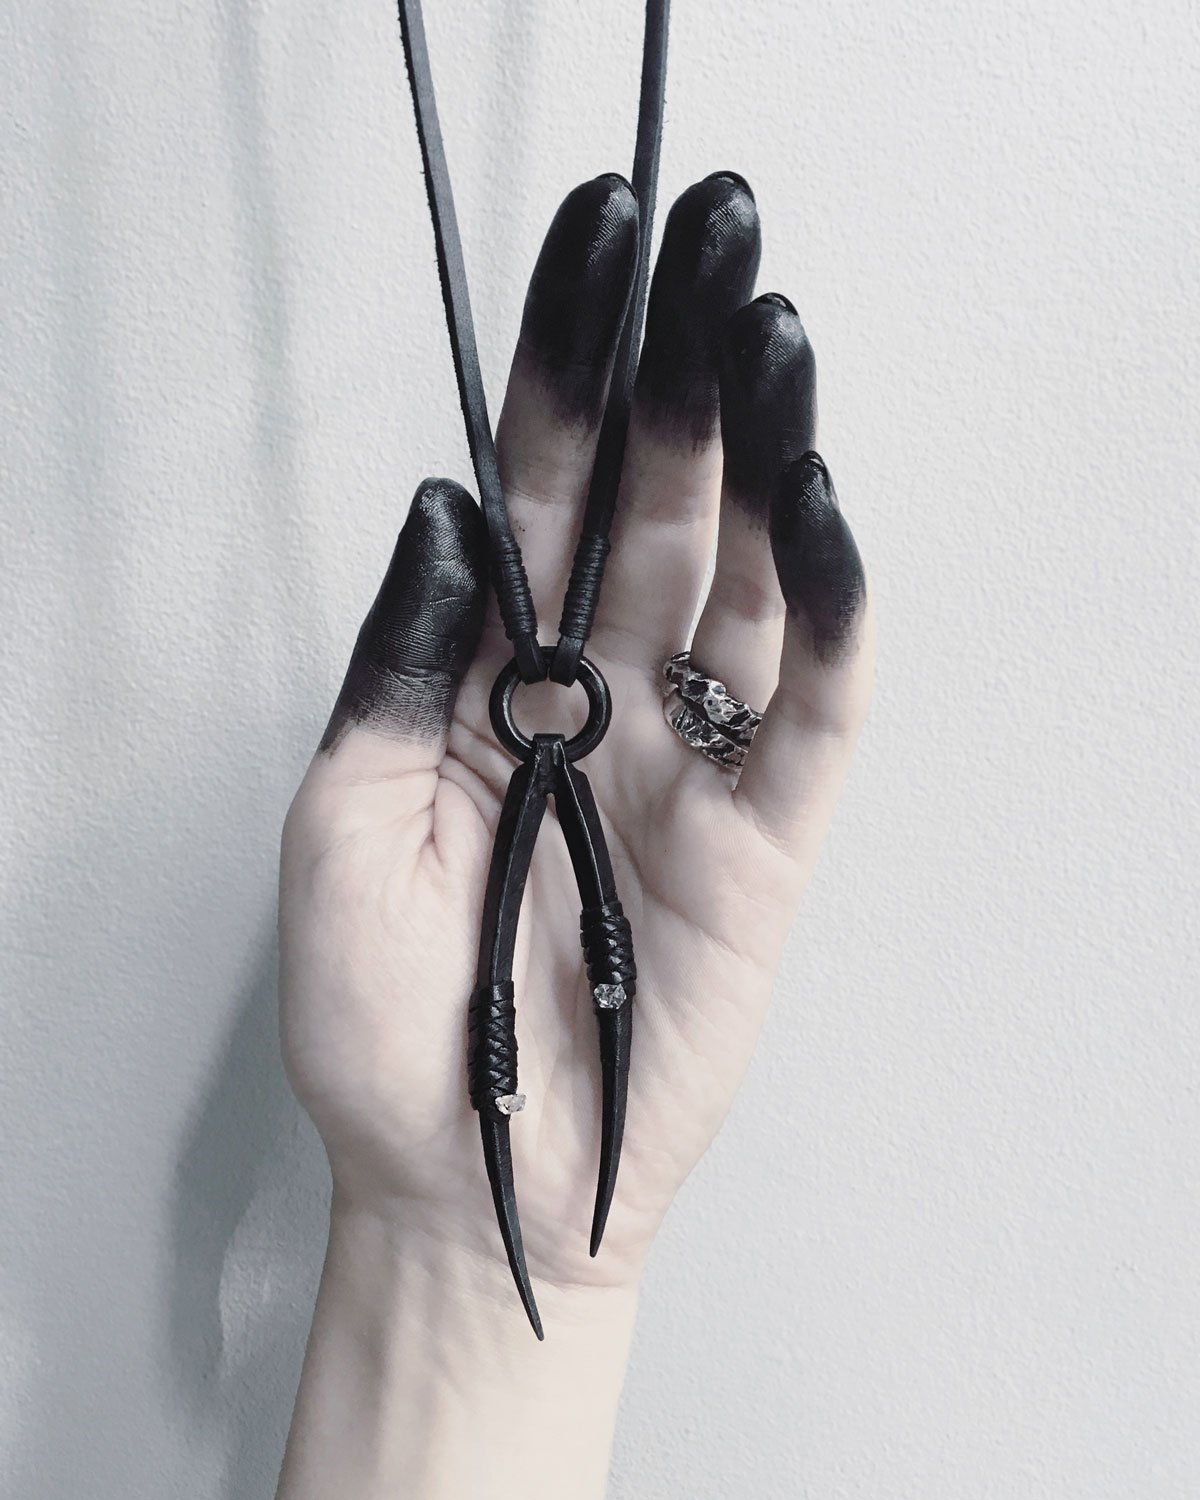 PEDIPALP NECKLACE - This. I need this. Black wrought iron with little Quartz inserts, wrapped in black leather. Oh my goodness.